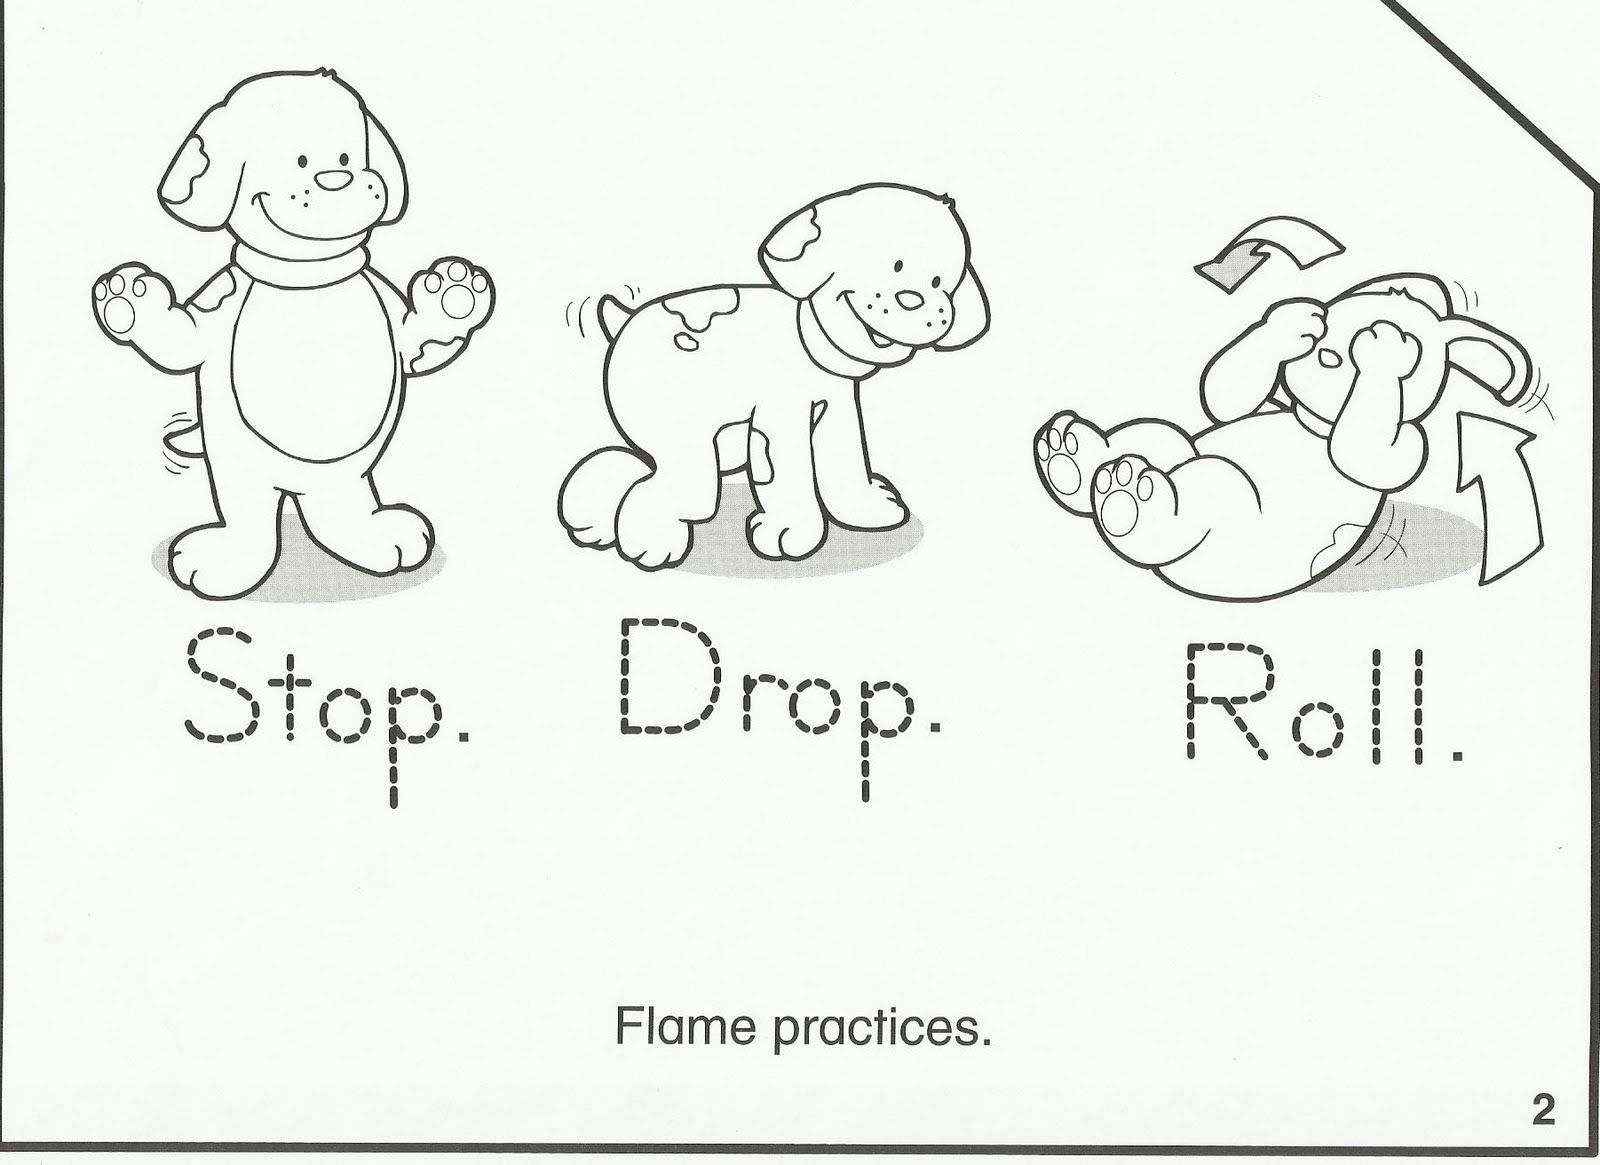 Worksheets Fire Safety Worksheets fire safety coloring pages for preschool crafts preschool